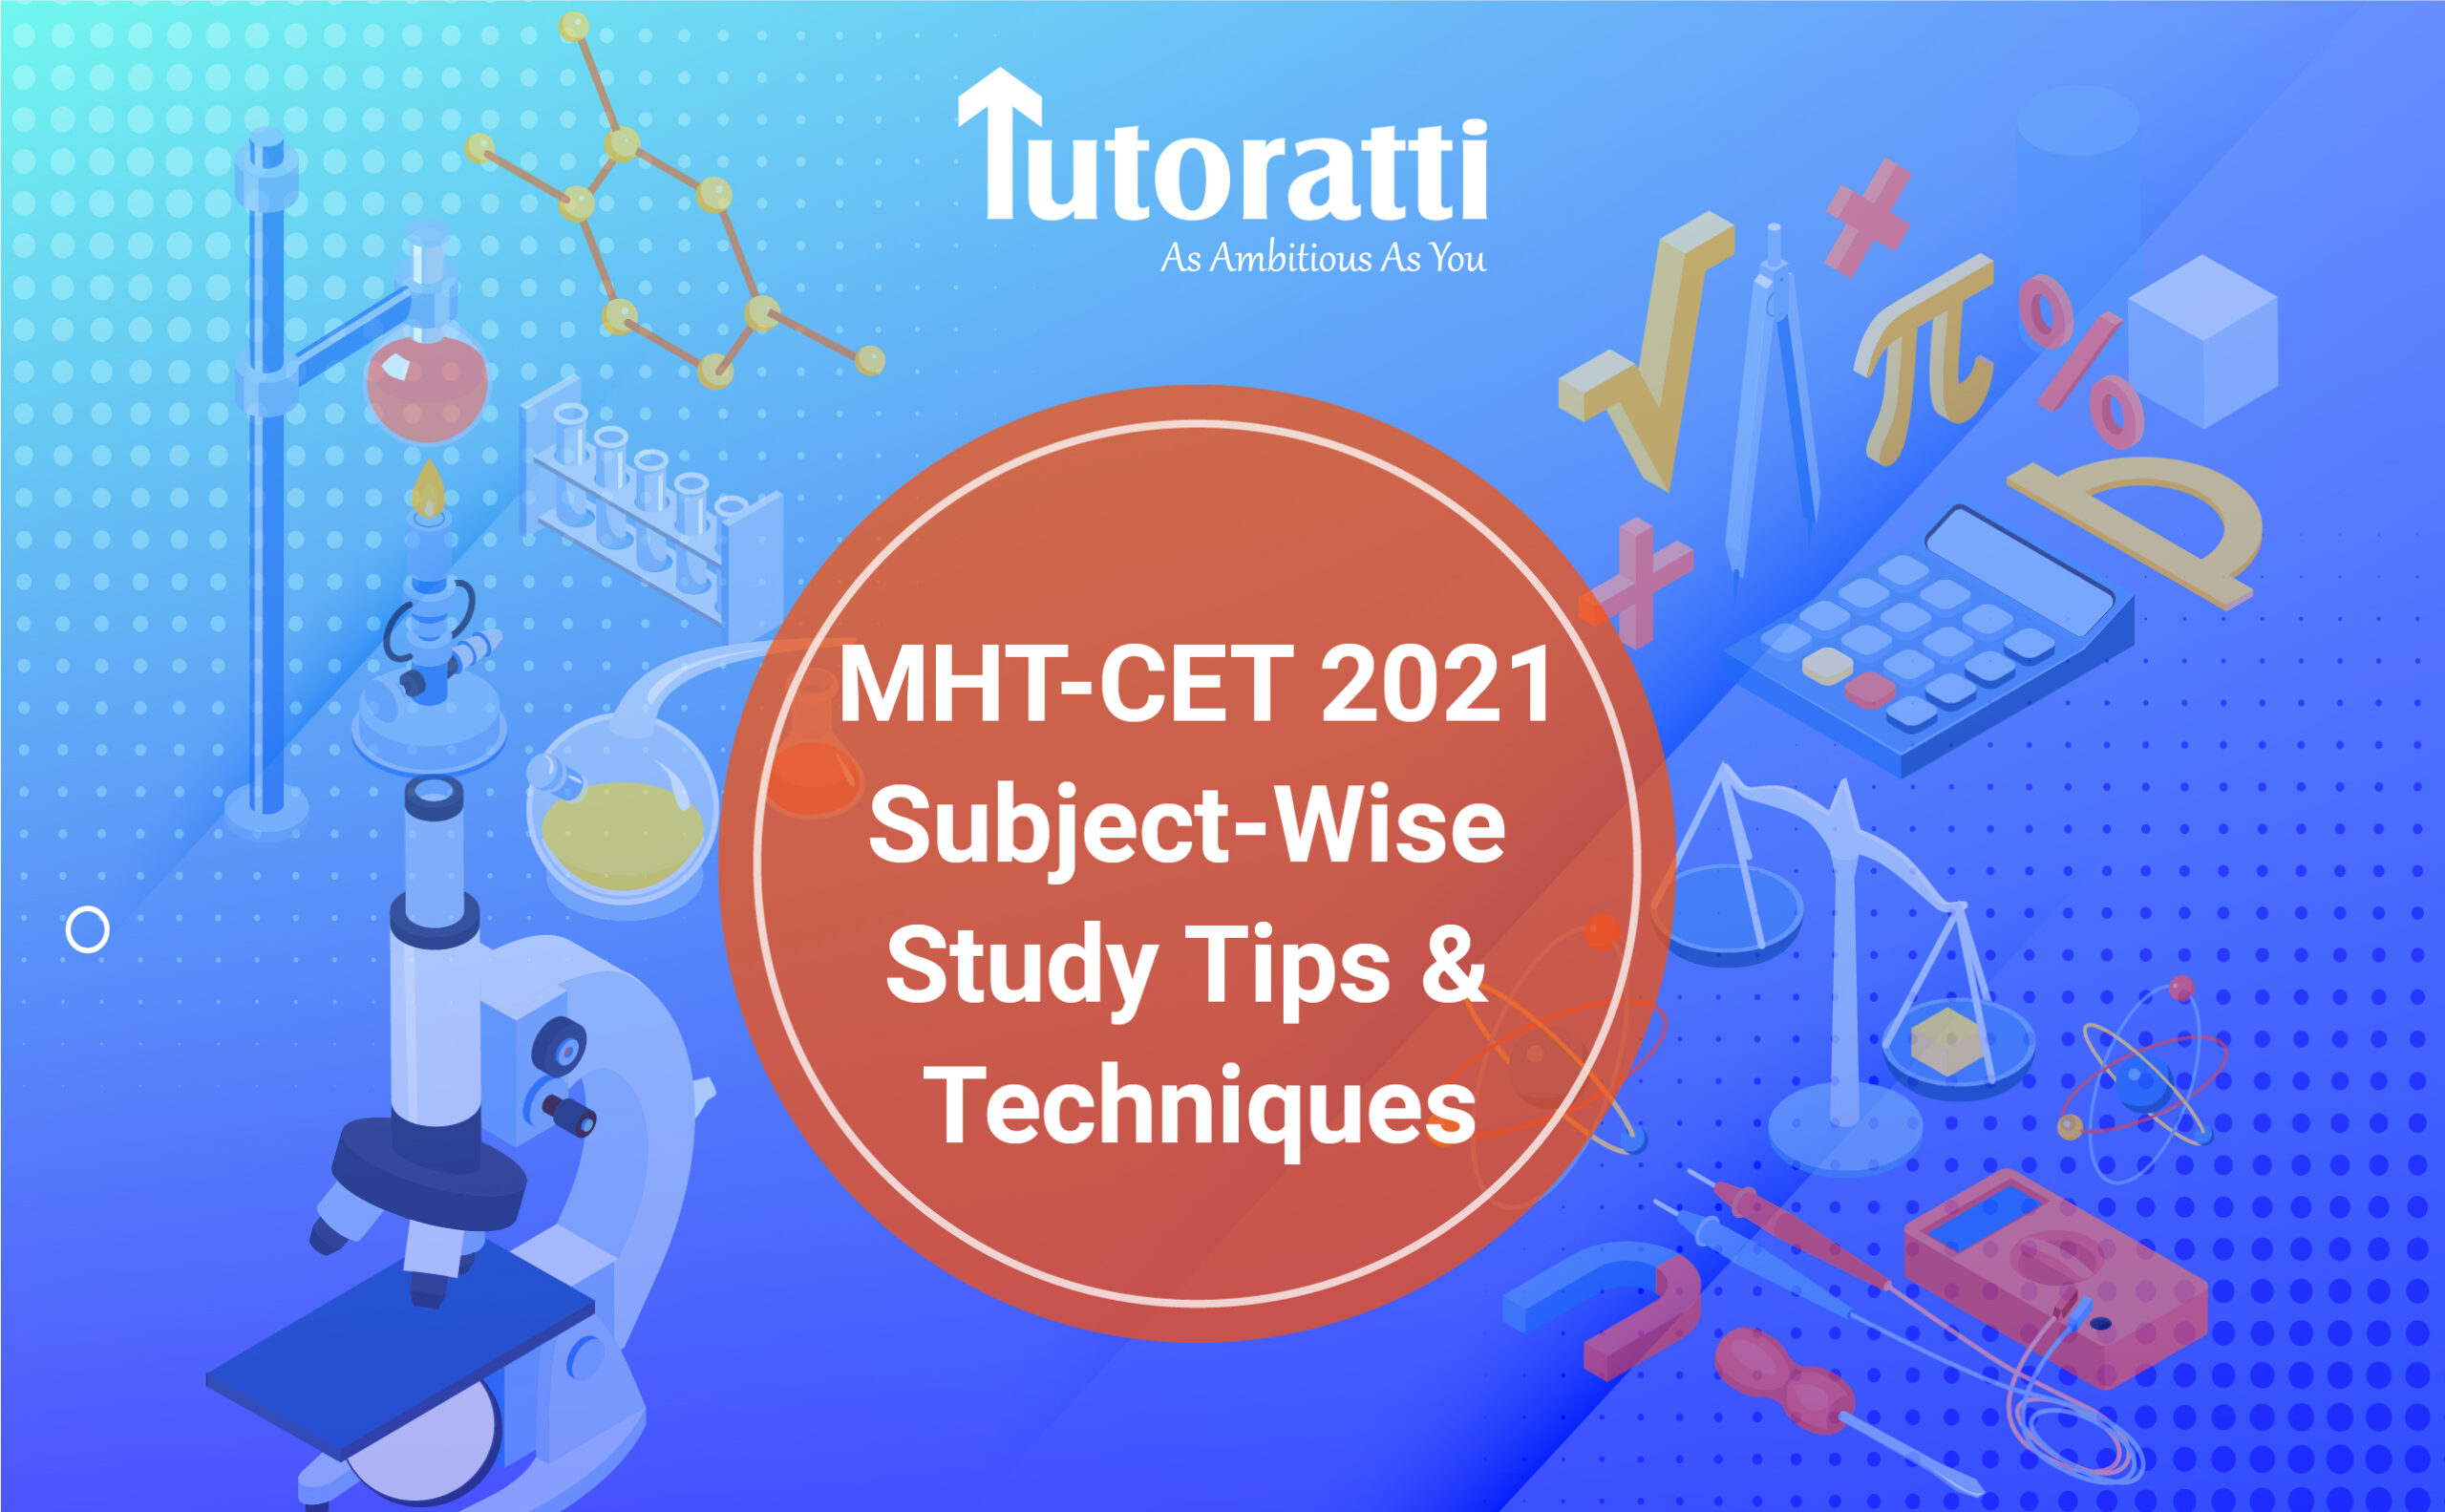 MHT-CET 2021 Subject Wise Study Tips and Techniques